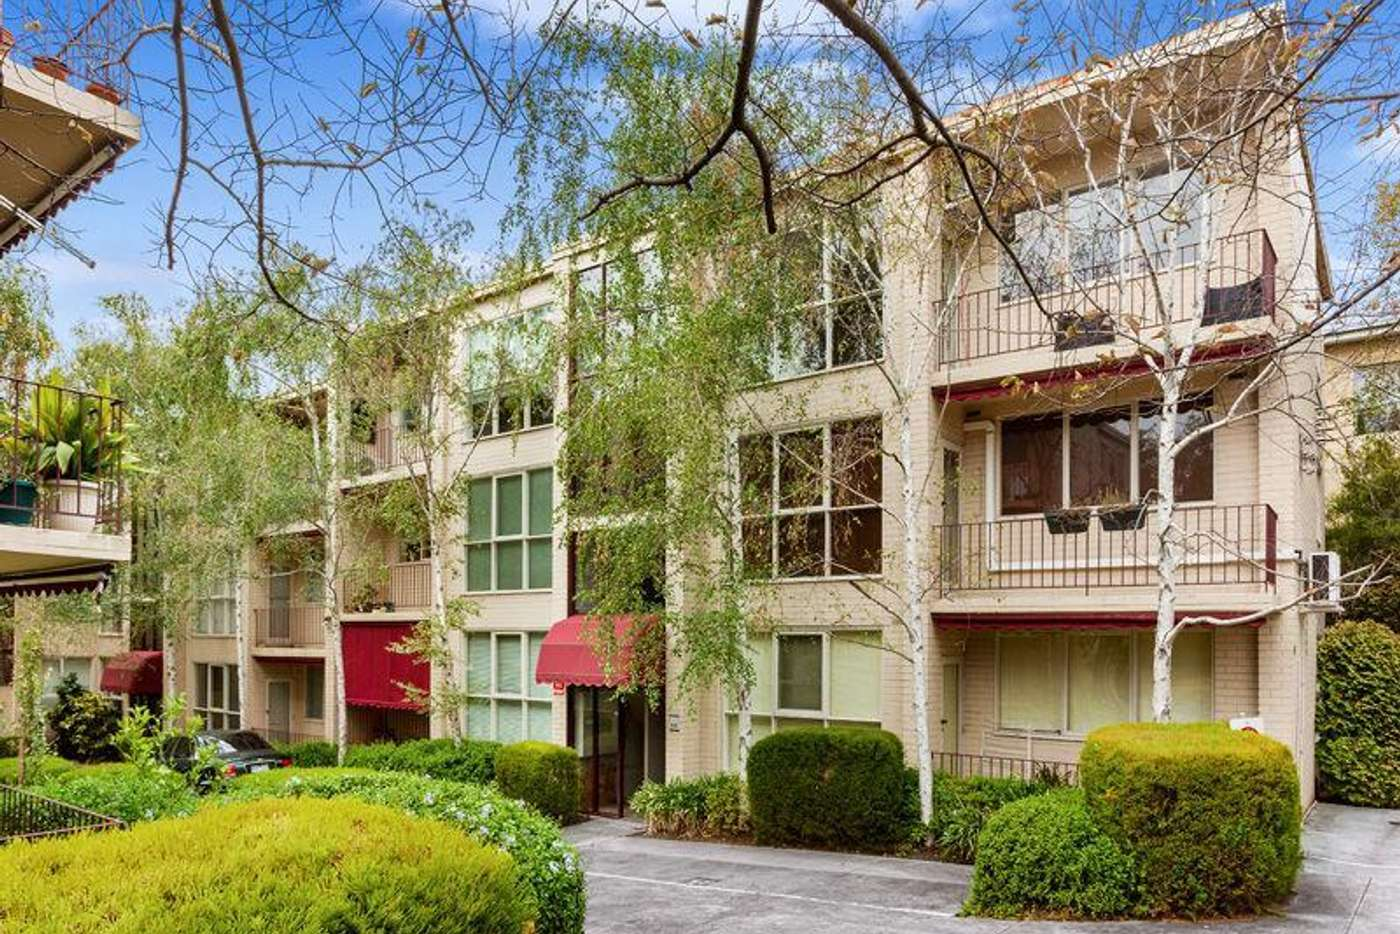 Main view of Homely apartment listing, 11/579 Dandenong Road, Armadale VIC 3143